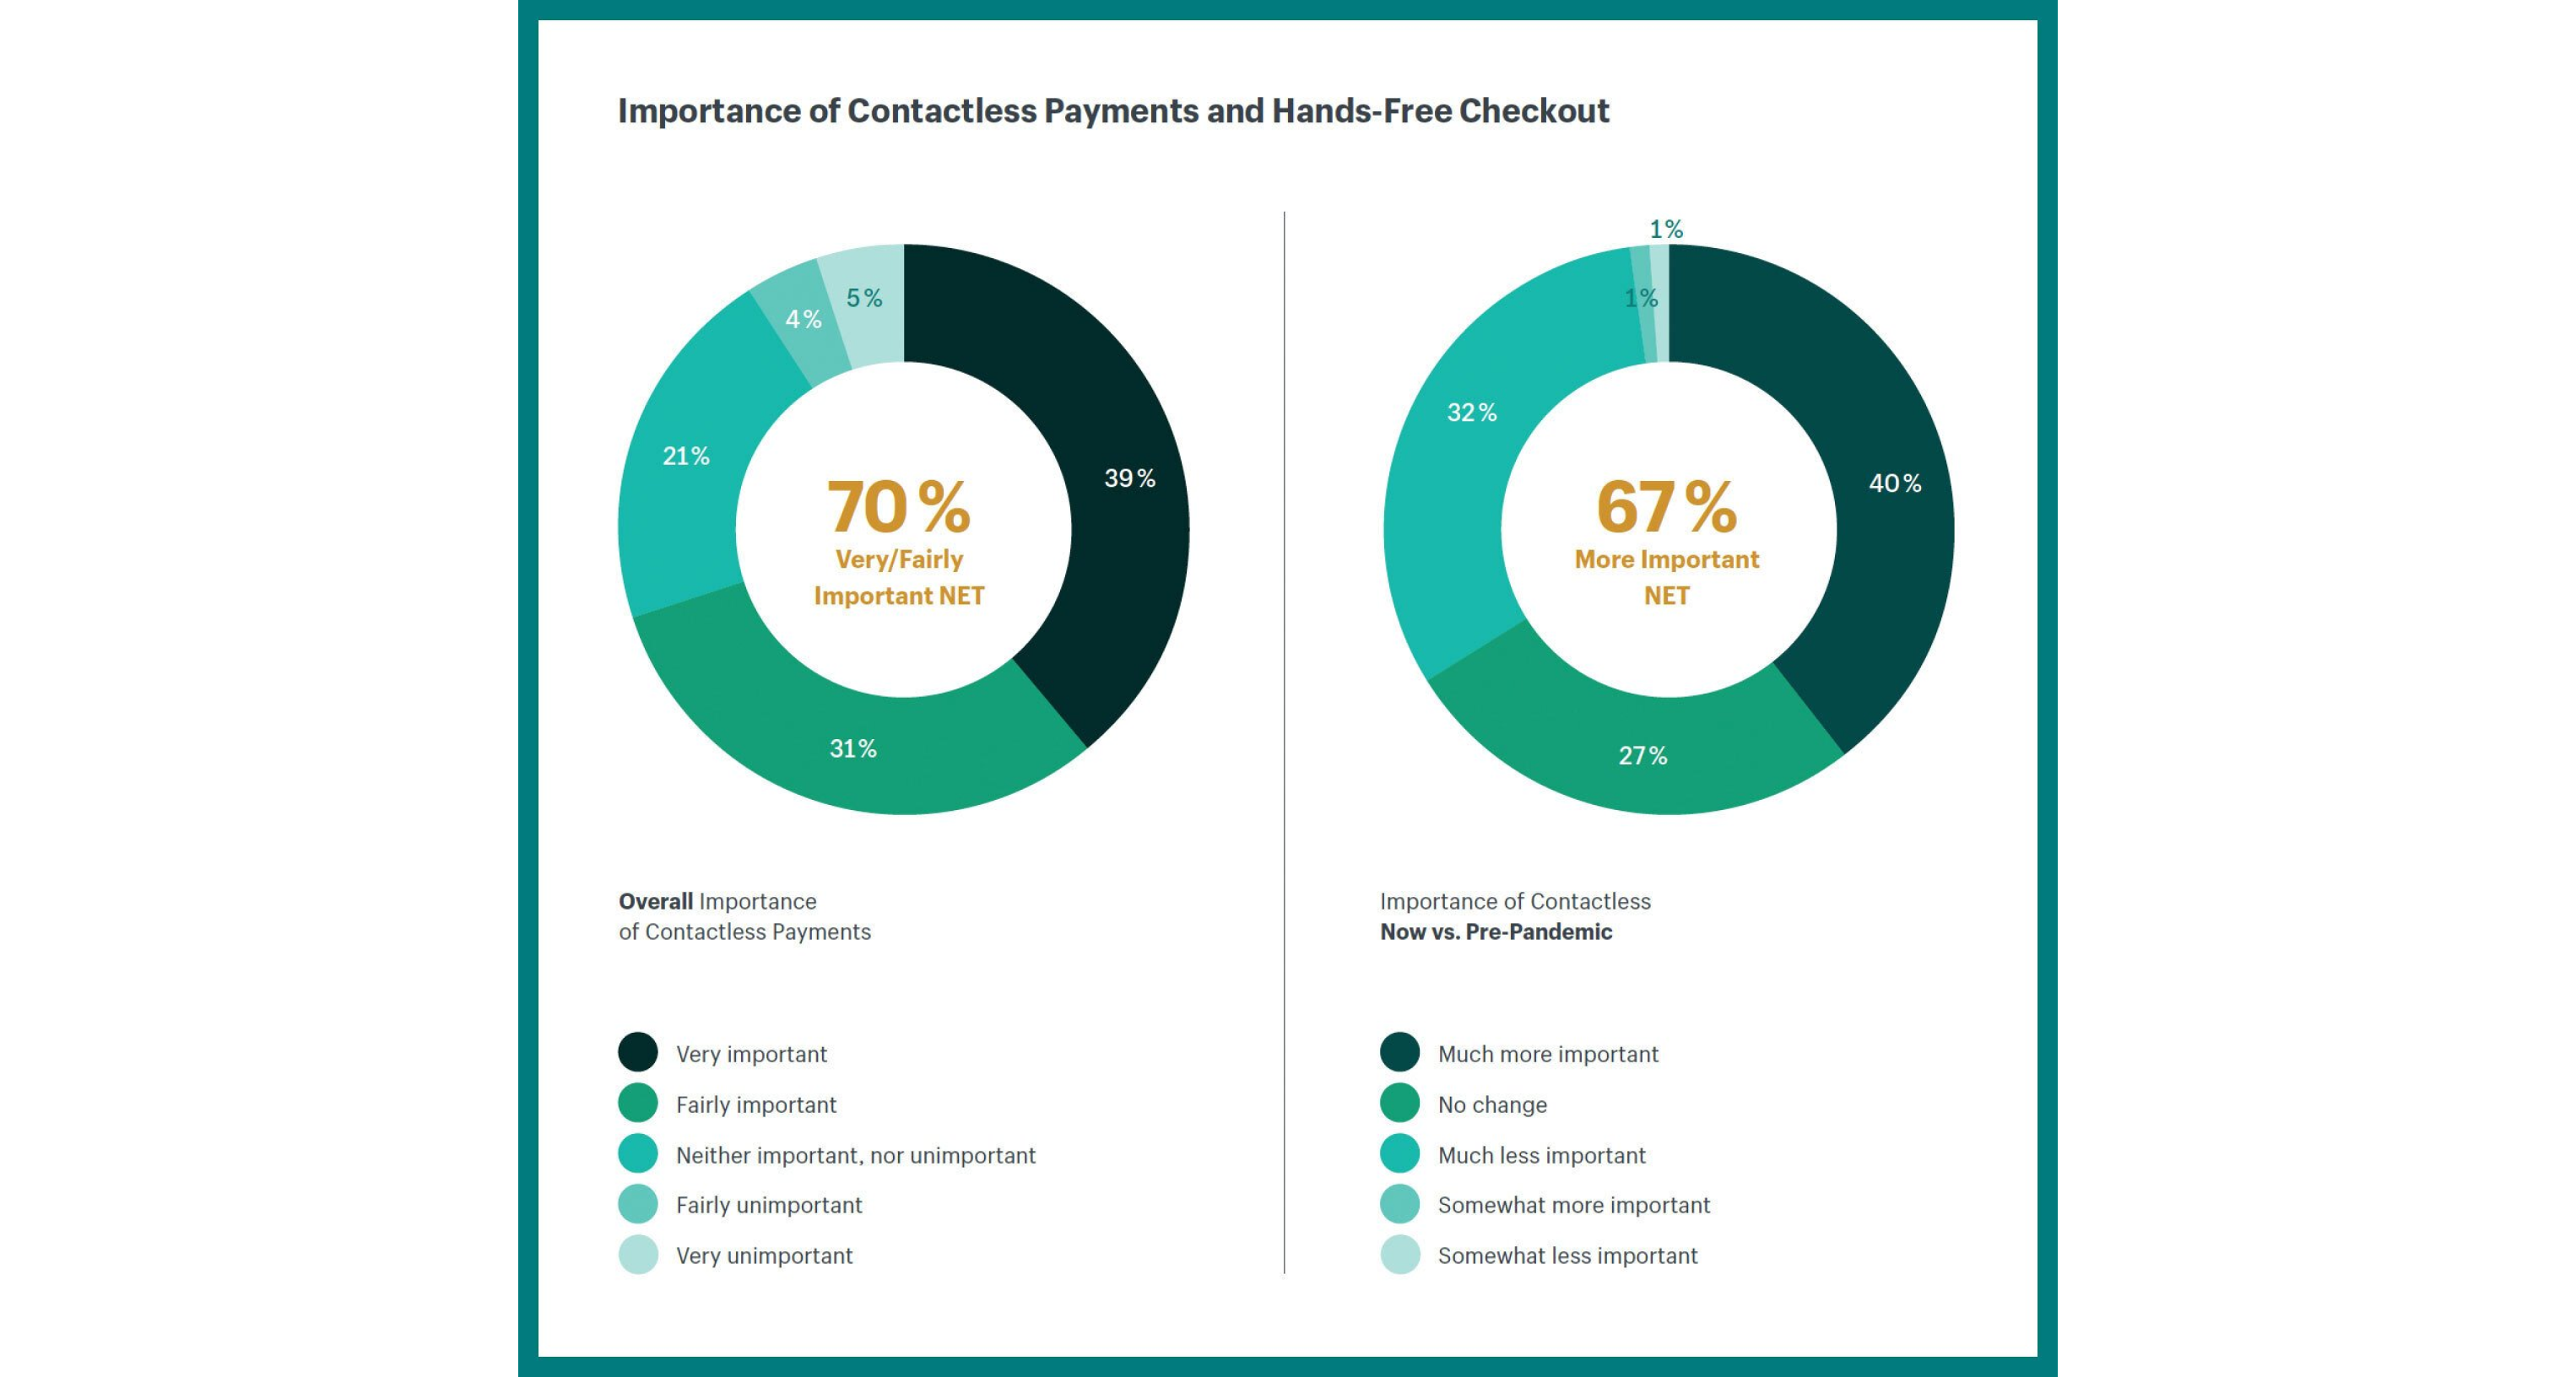 contactless payments future eCommerce retail post pandemic